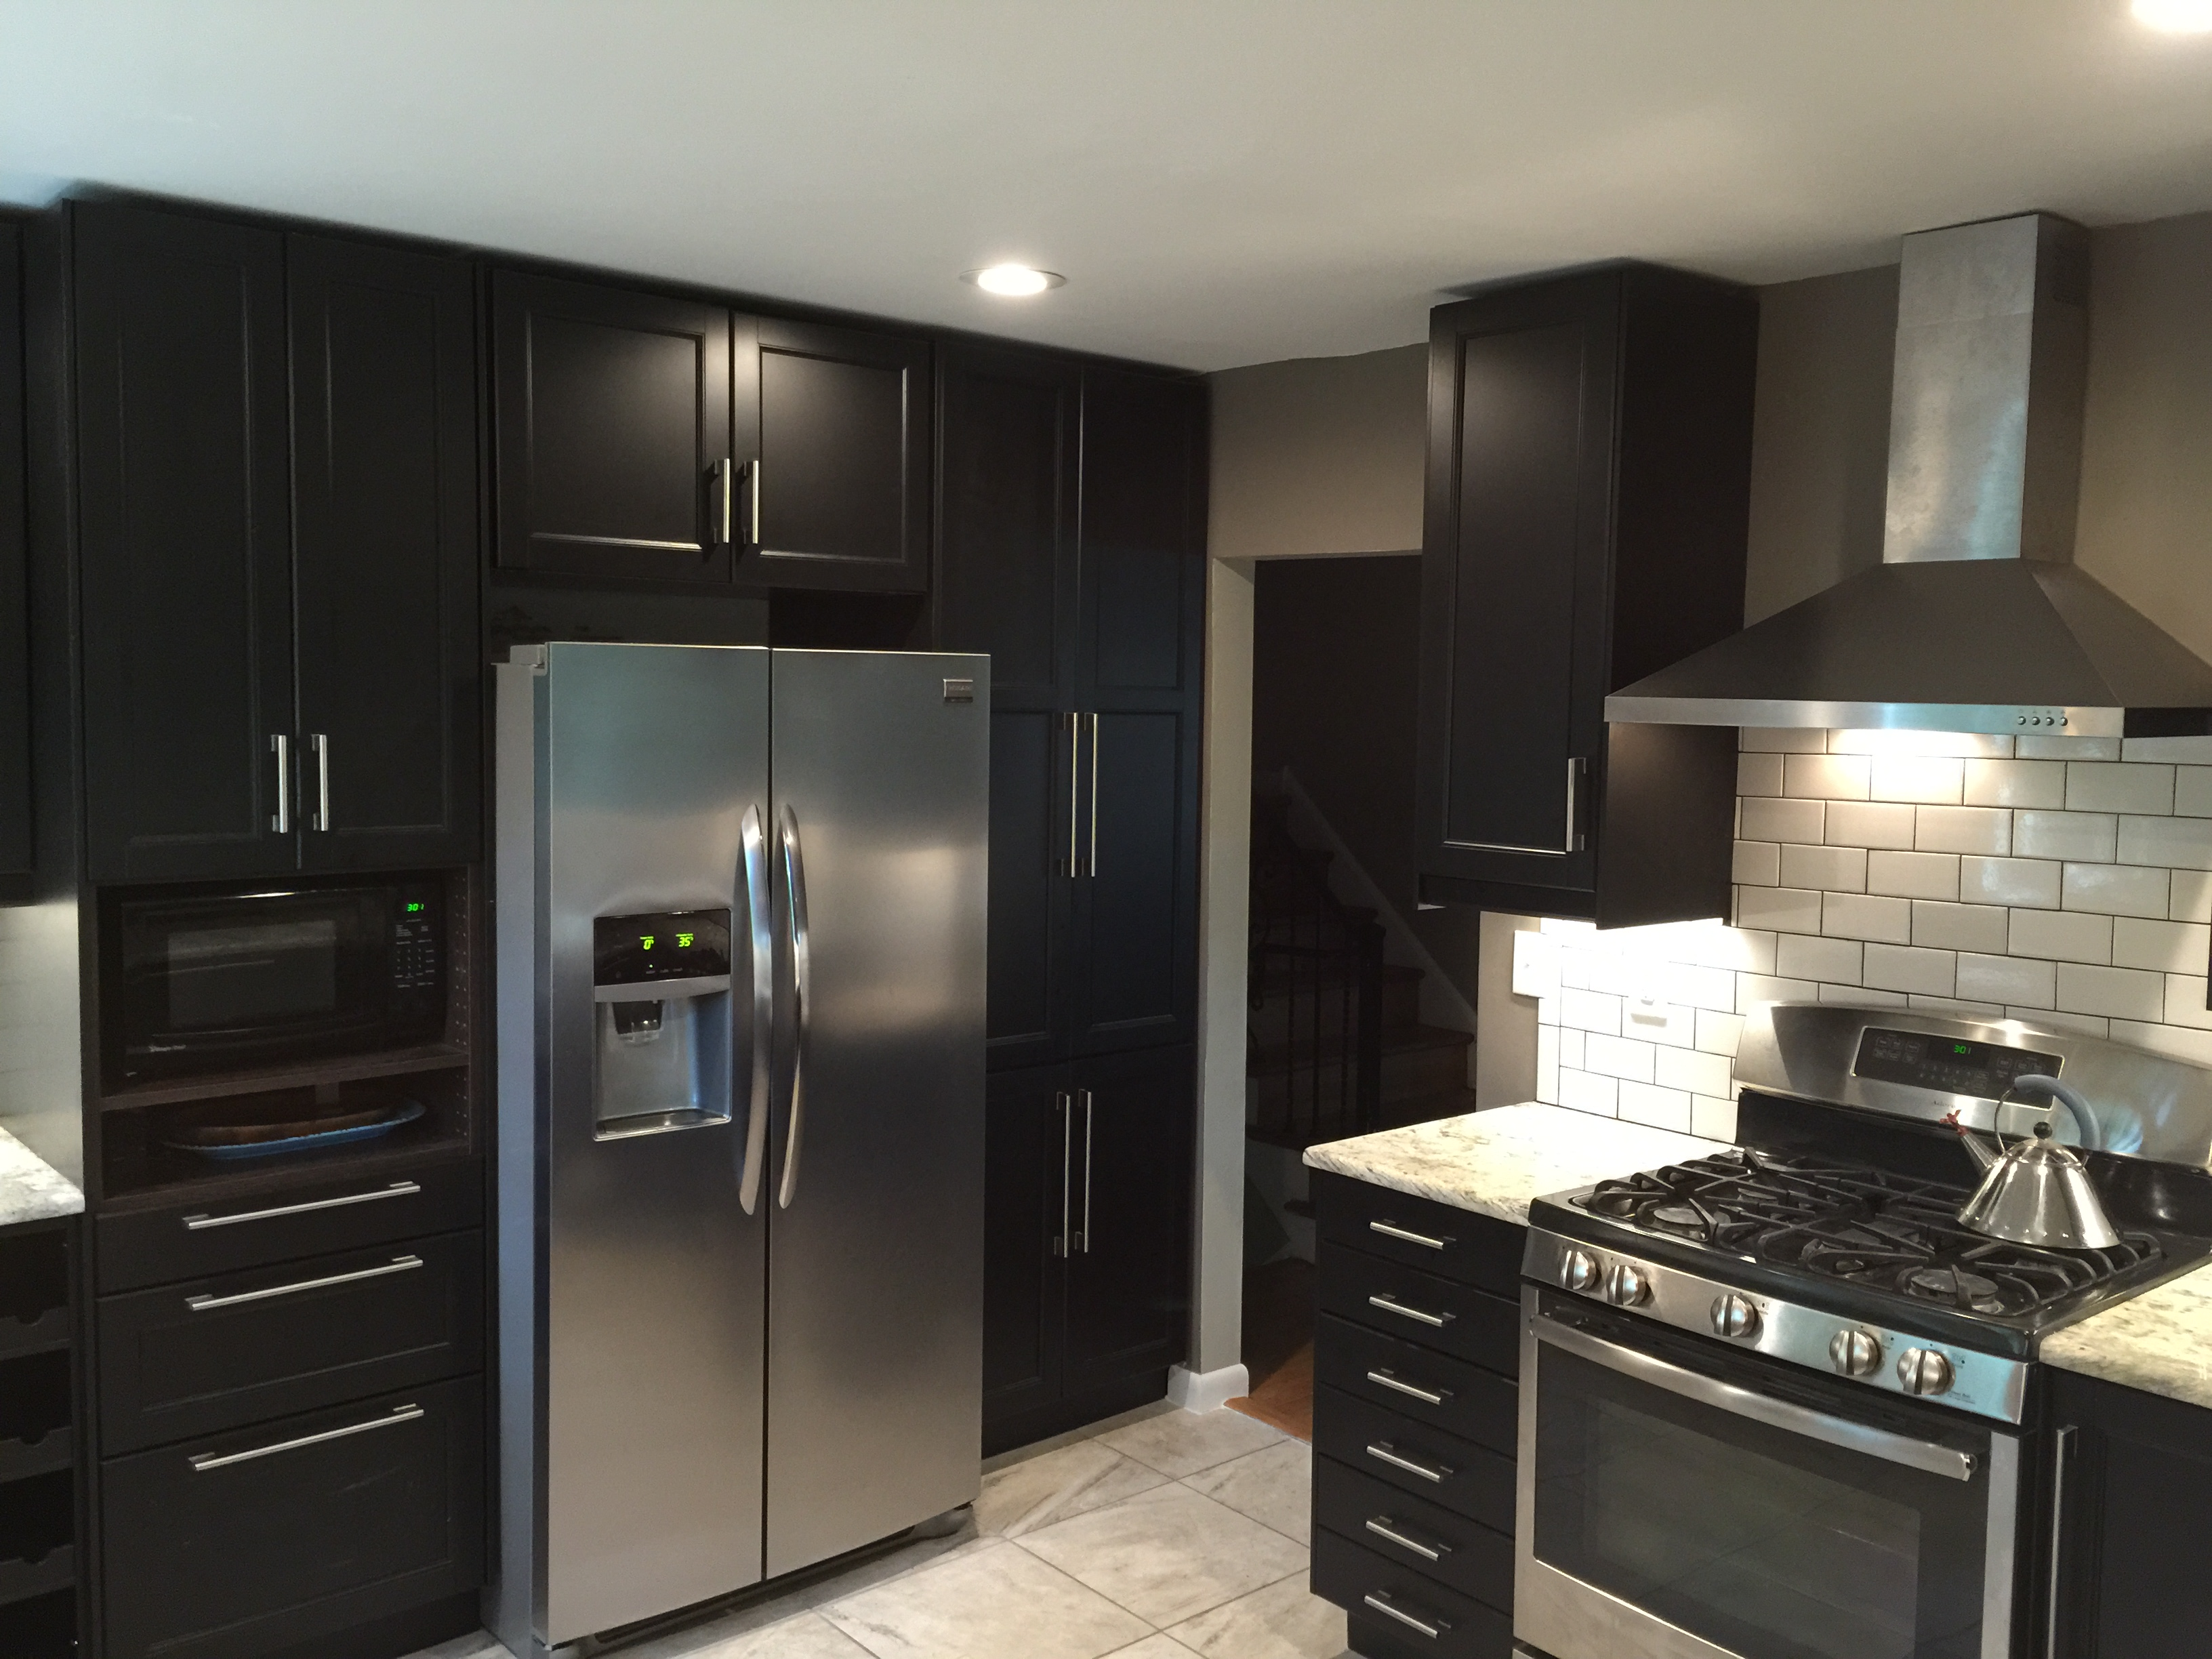 An ikea kitchen renovation for serious chefs with style for Kitchen kitchen cabinets